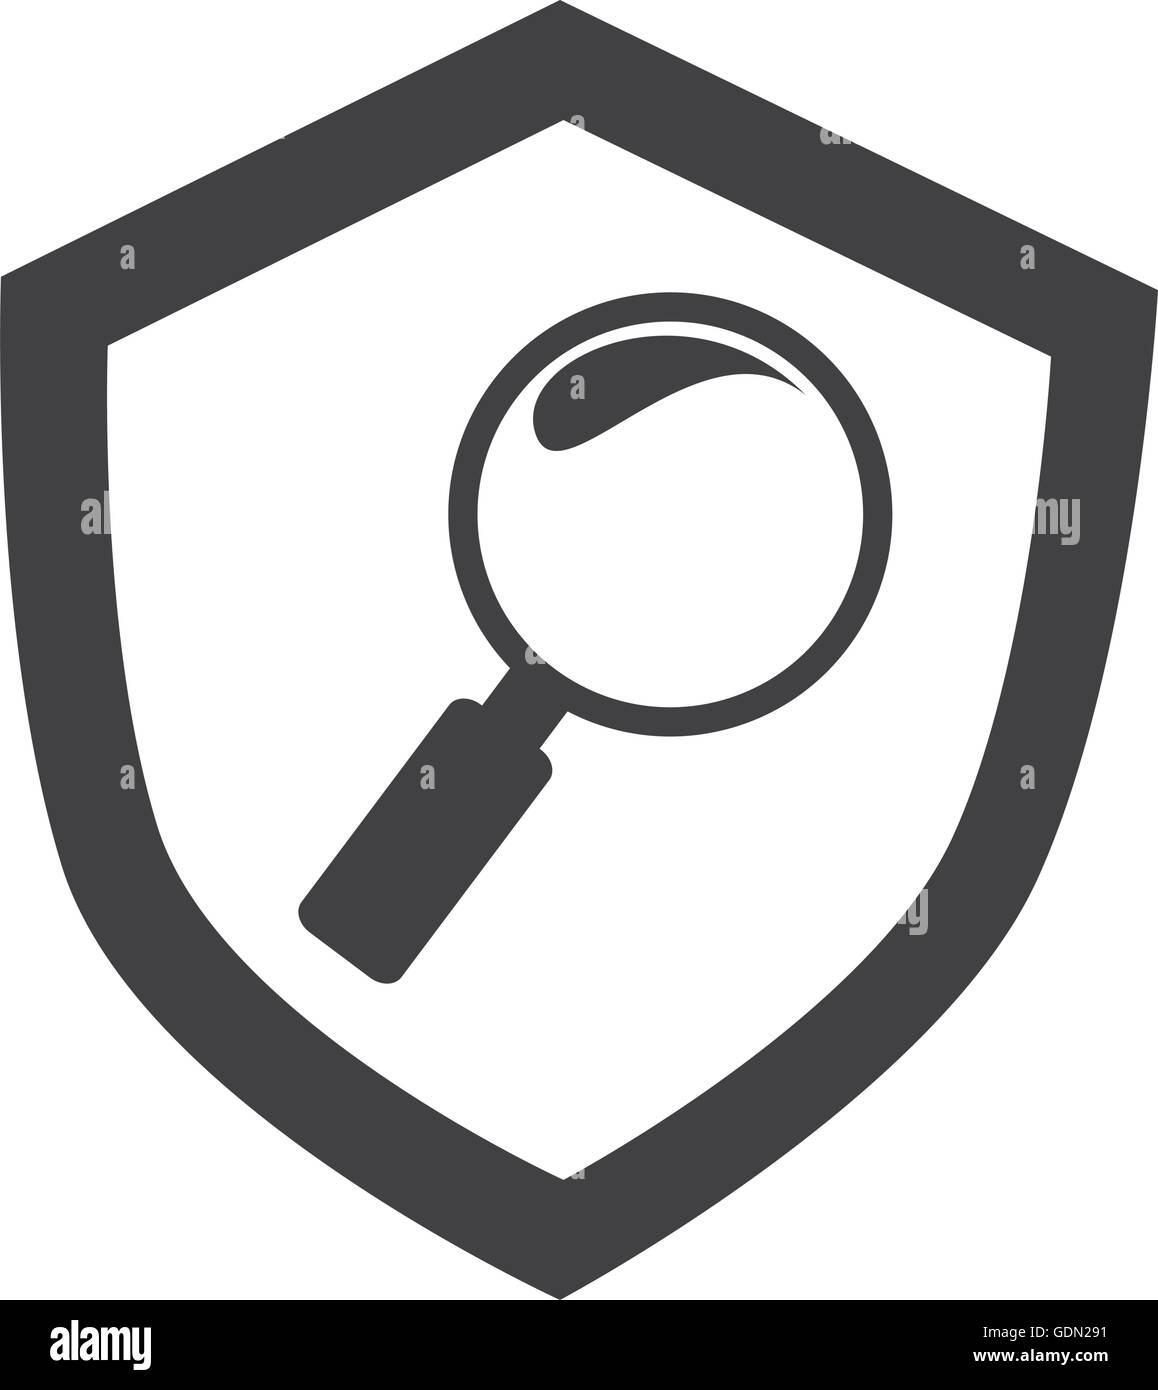 73f9736e1 Magnifying glass icon vector illustration graphic design - Stock Image